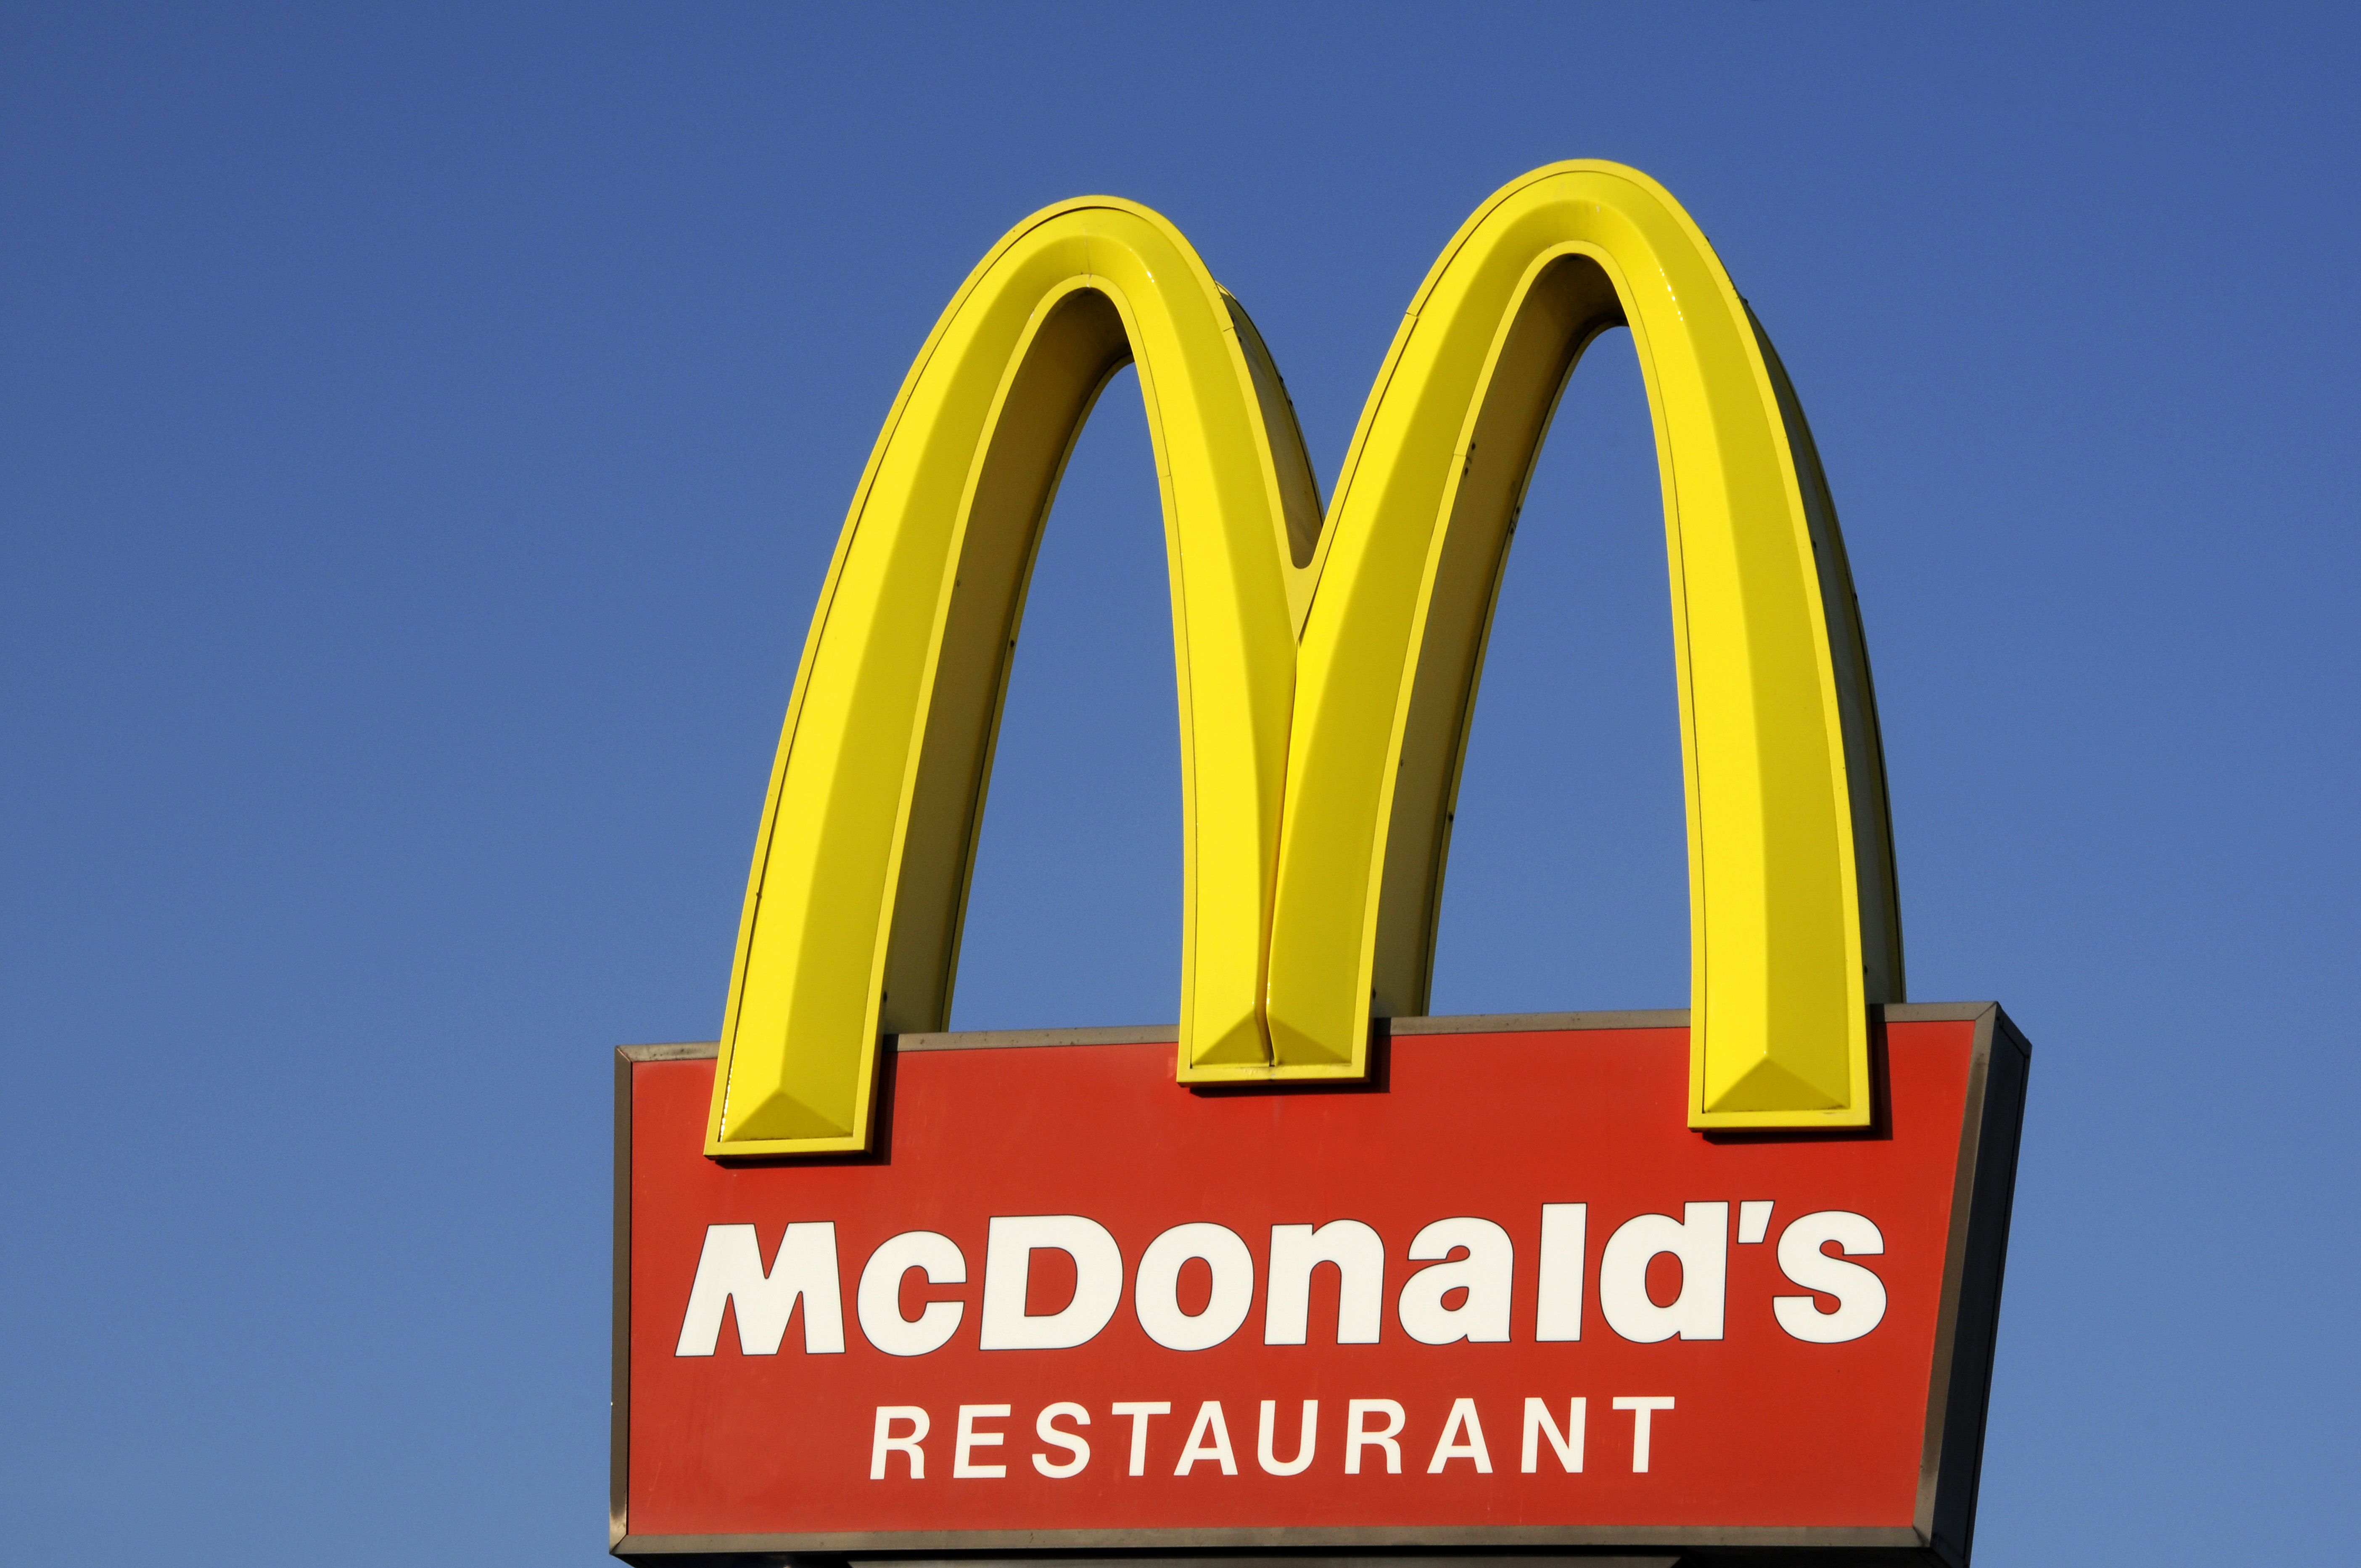 So, apparently there's a gold card that lets you get free McDonald's for  life